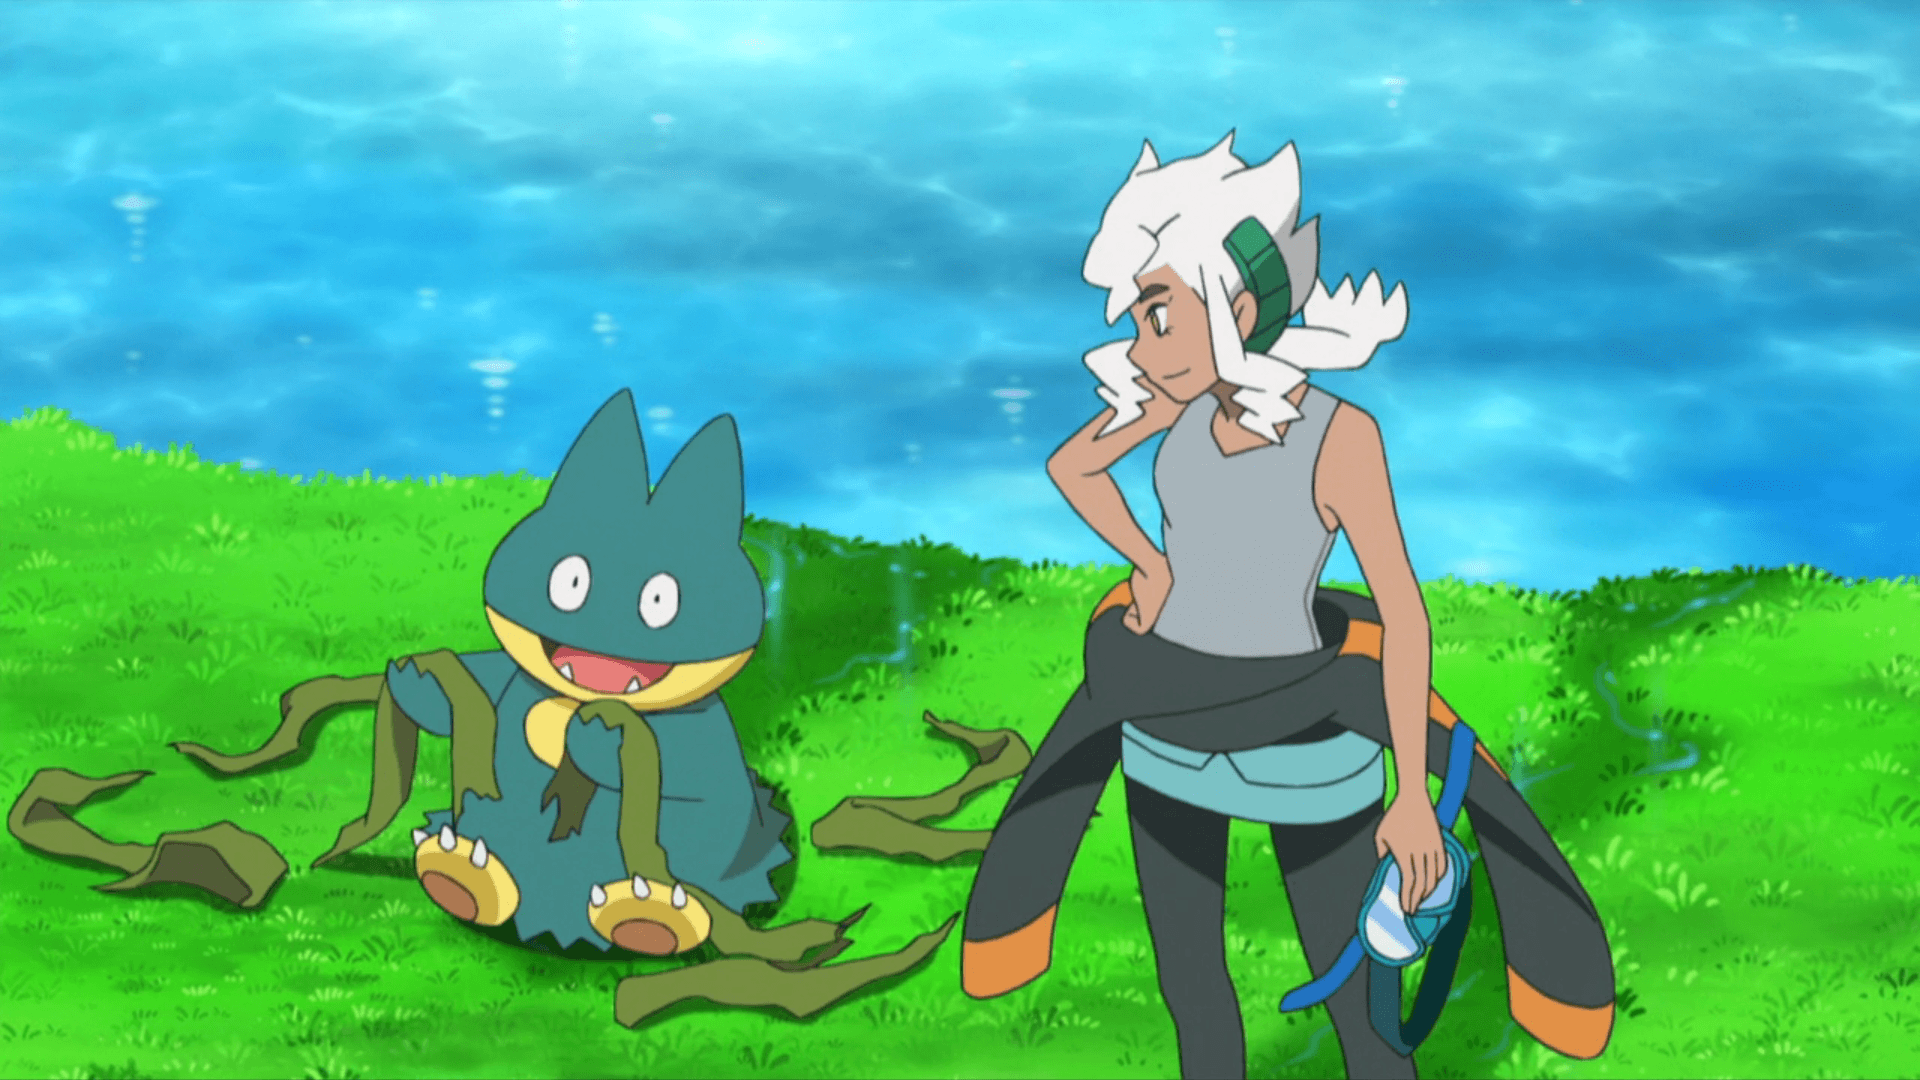 Professor Burnet's Munchlax | Pokémon Wiki | FANDOM powered by Wikia